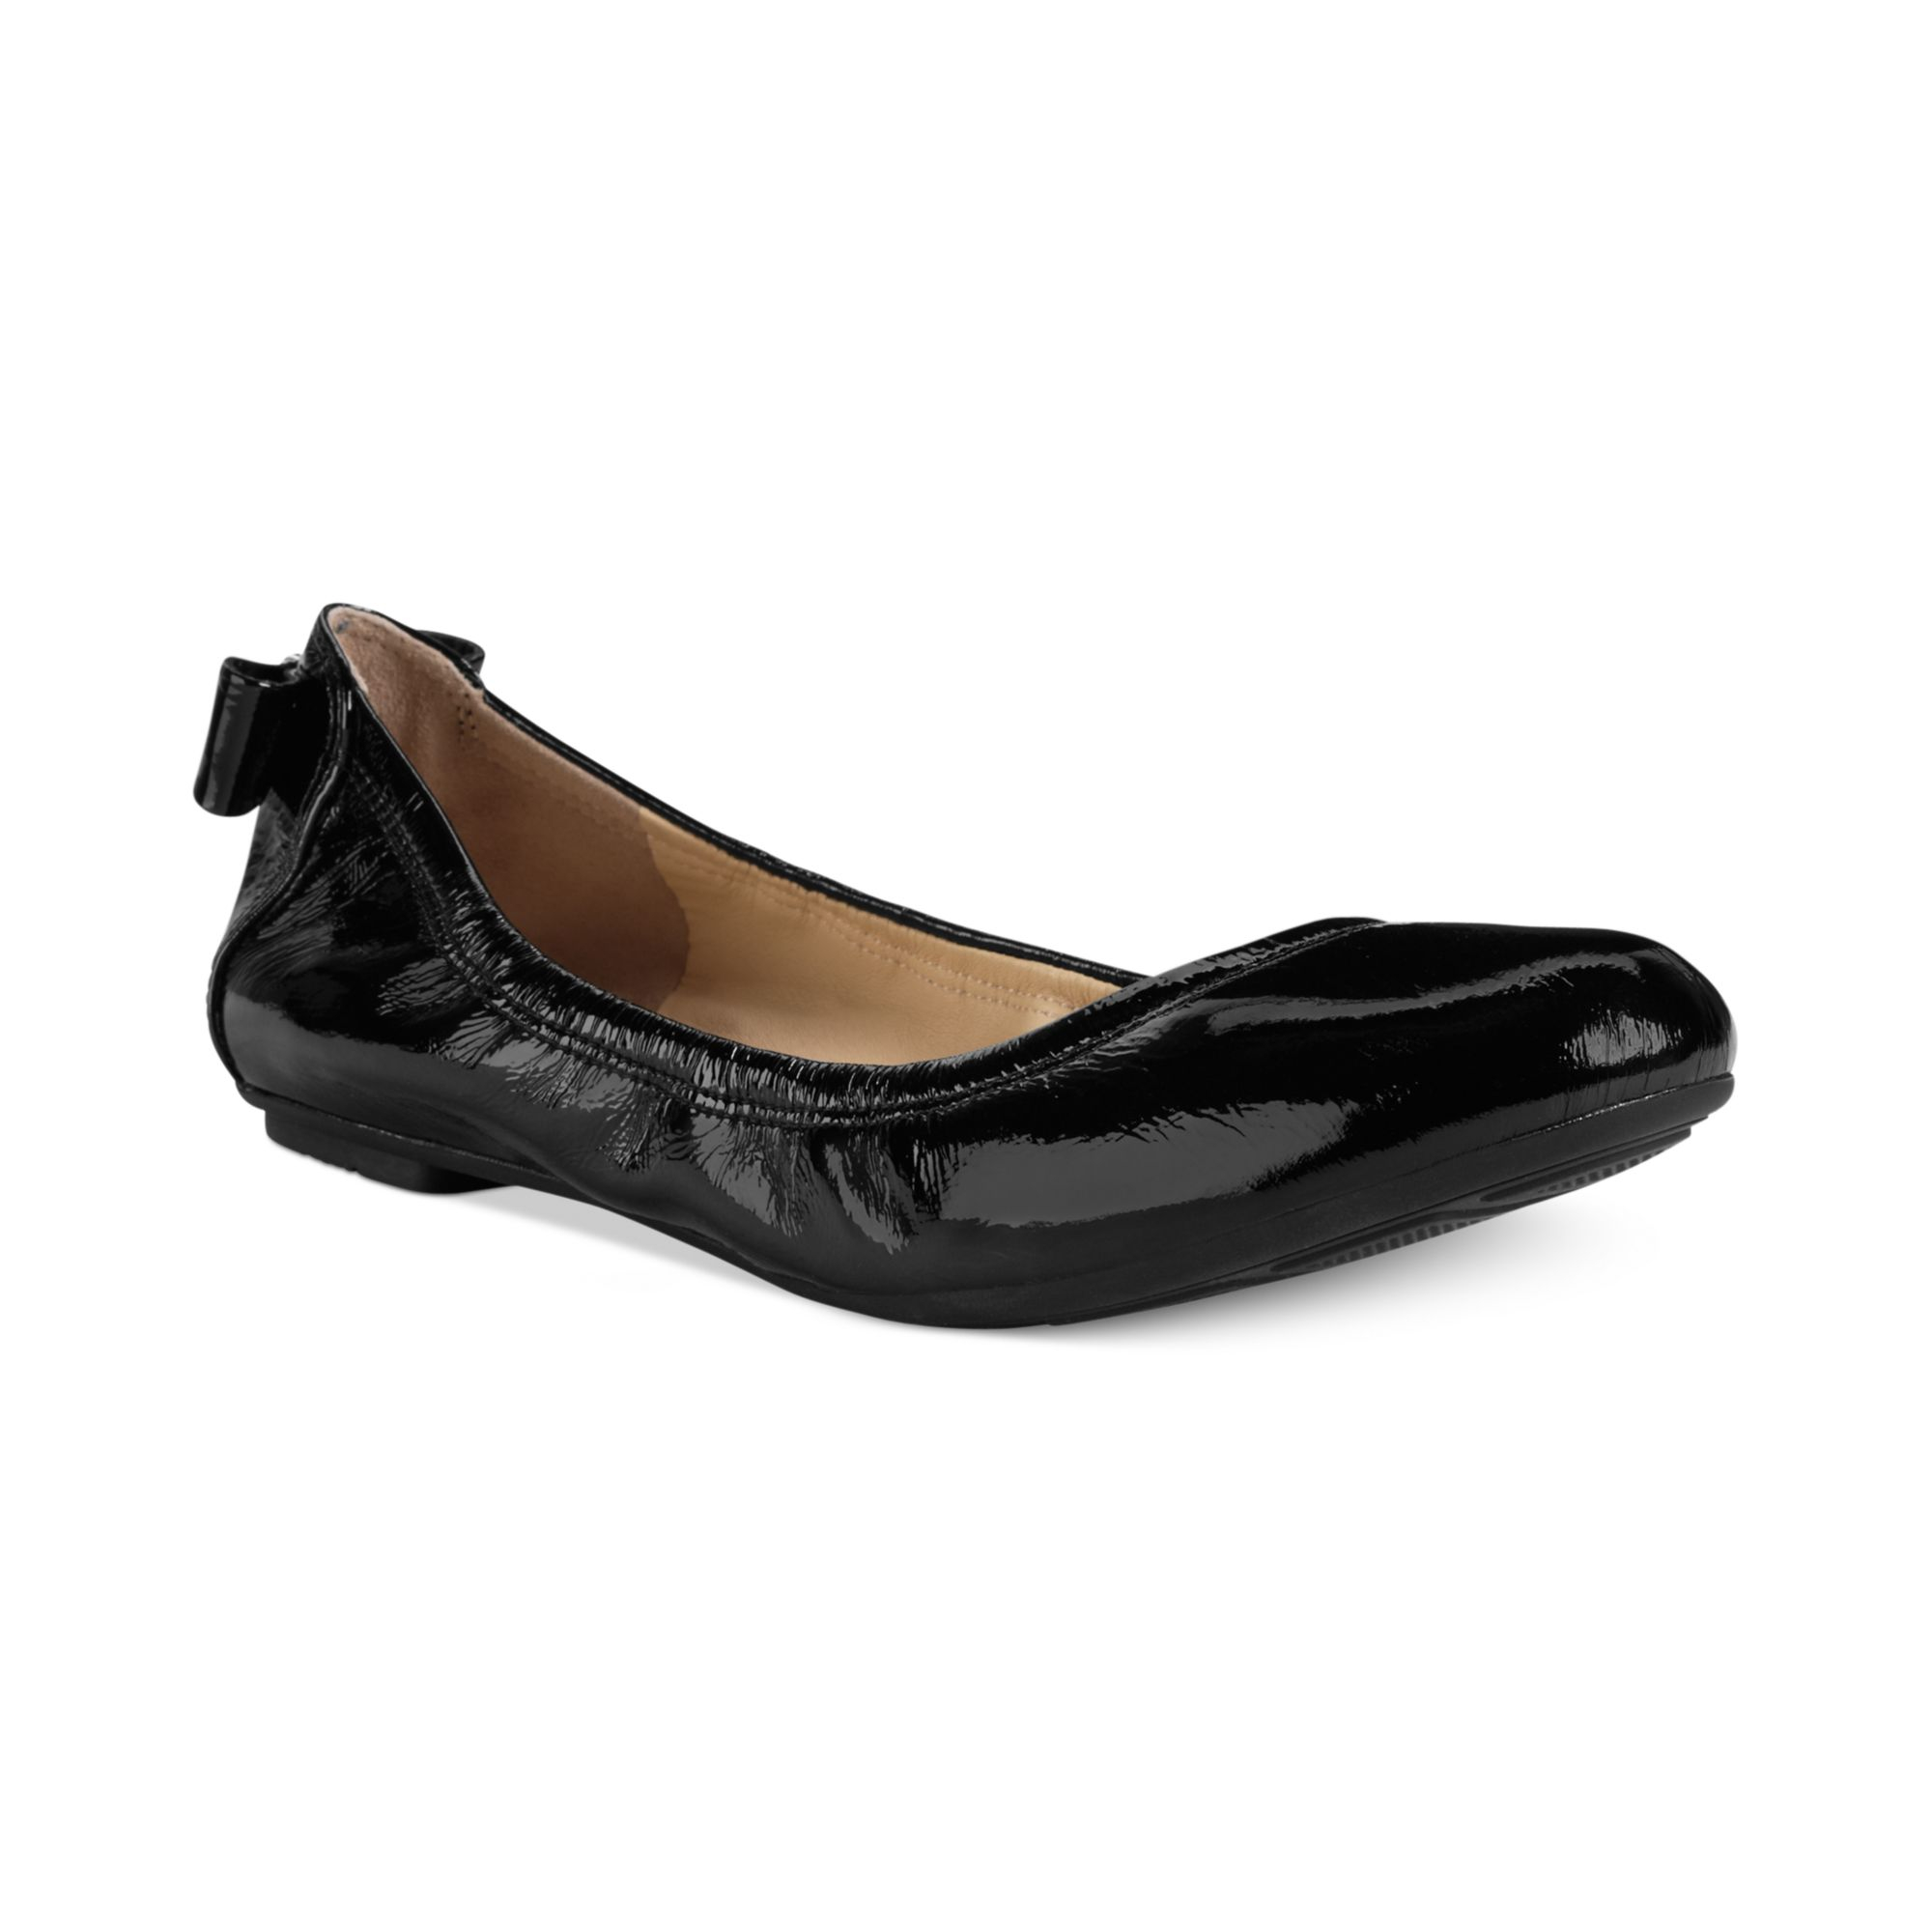 204d329d5caf Lyst - Cole Haan Womens Manhattan Bow Back Ballet Flats in Black